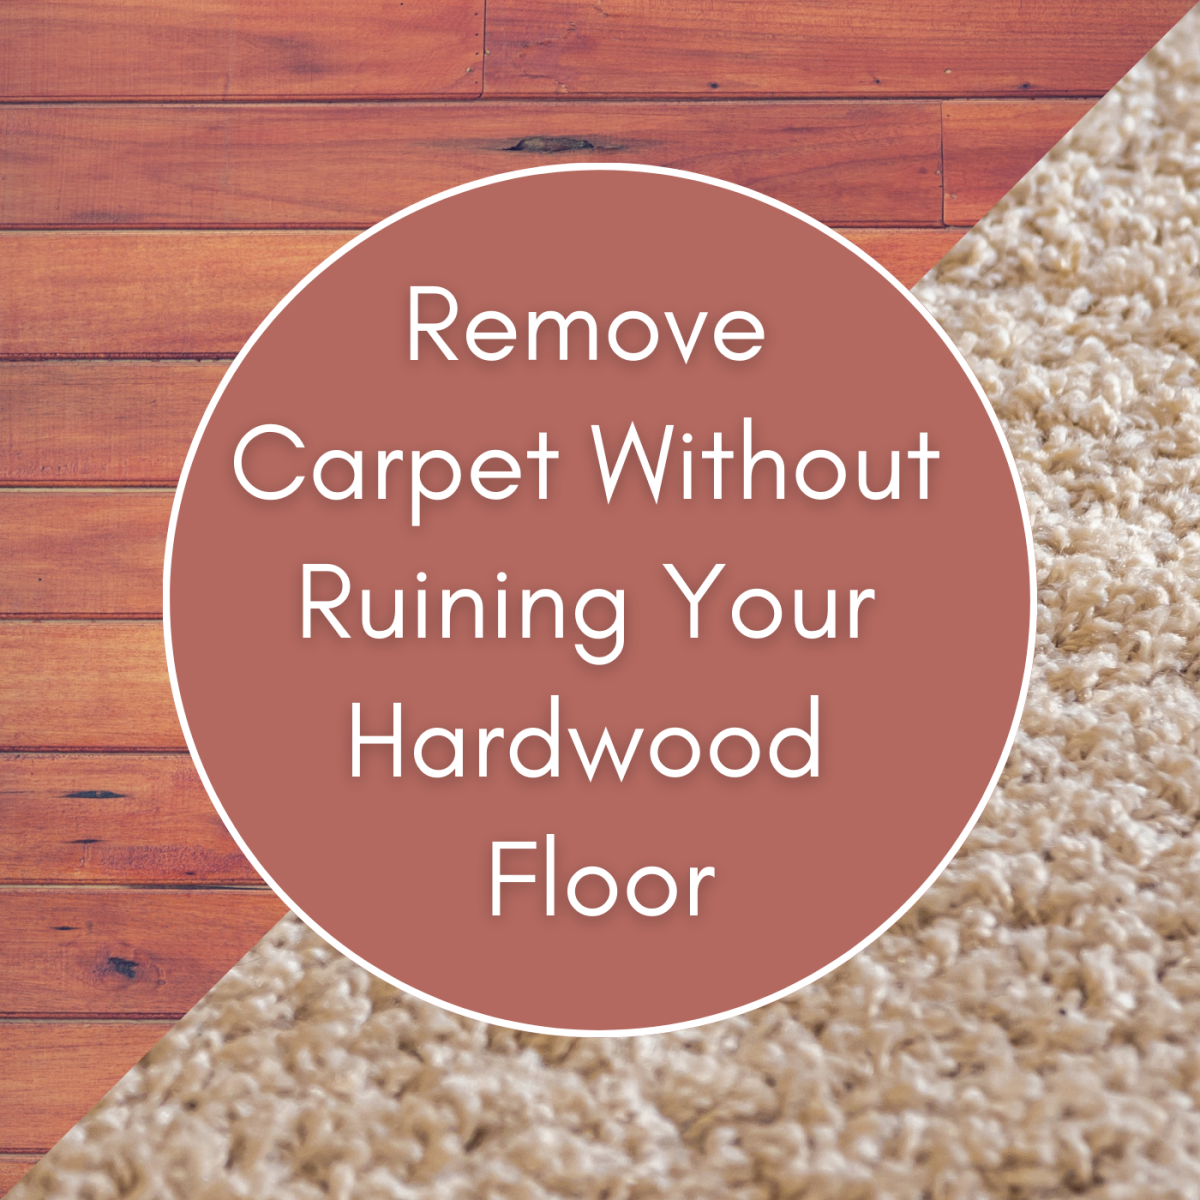 Learn how to remove carpet without causing damage to the hardwood floor below.